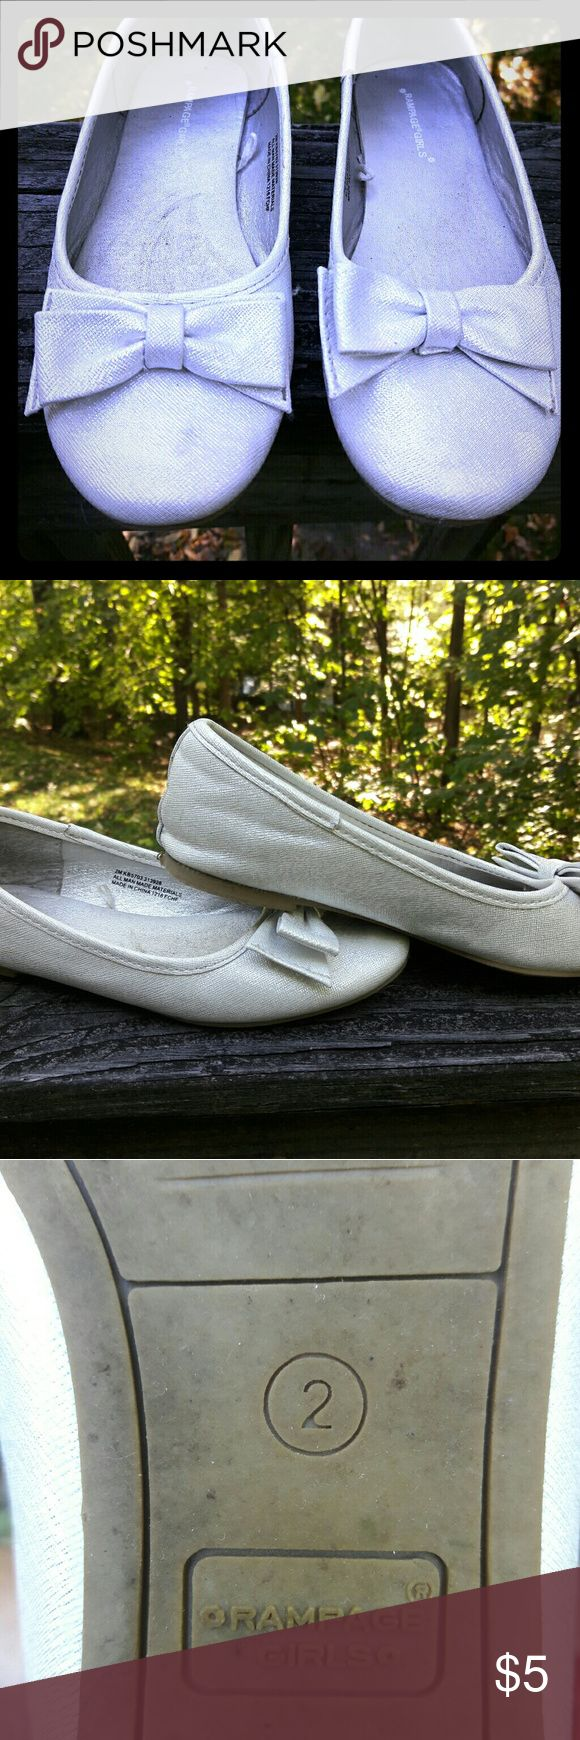 👸Diamond Sparkly Little Girls Flats 💎 Super cute sparkly white/silver flats for a special occasion or to snazzy up a simple outfit. Shoes Dress Shoes